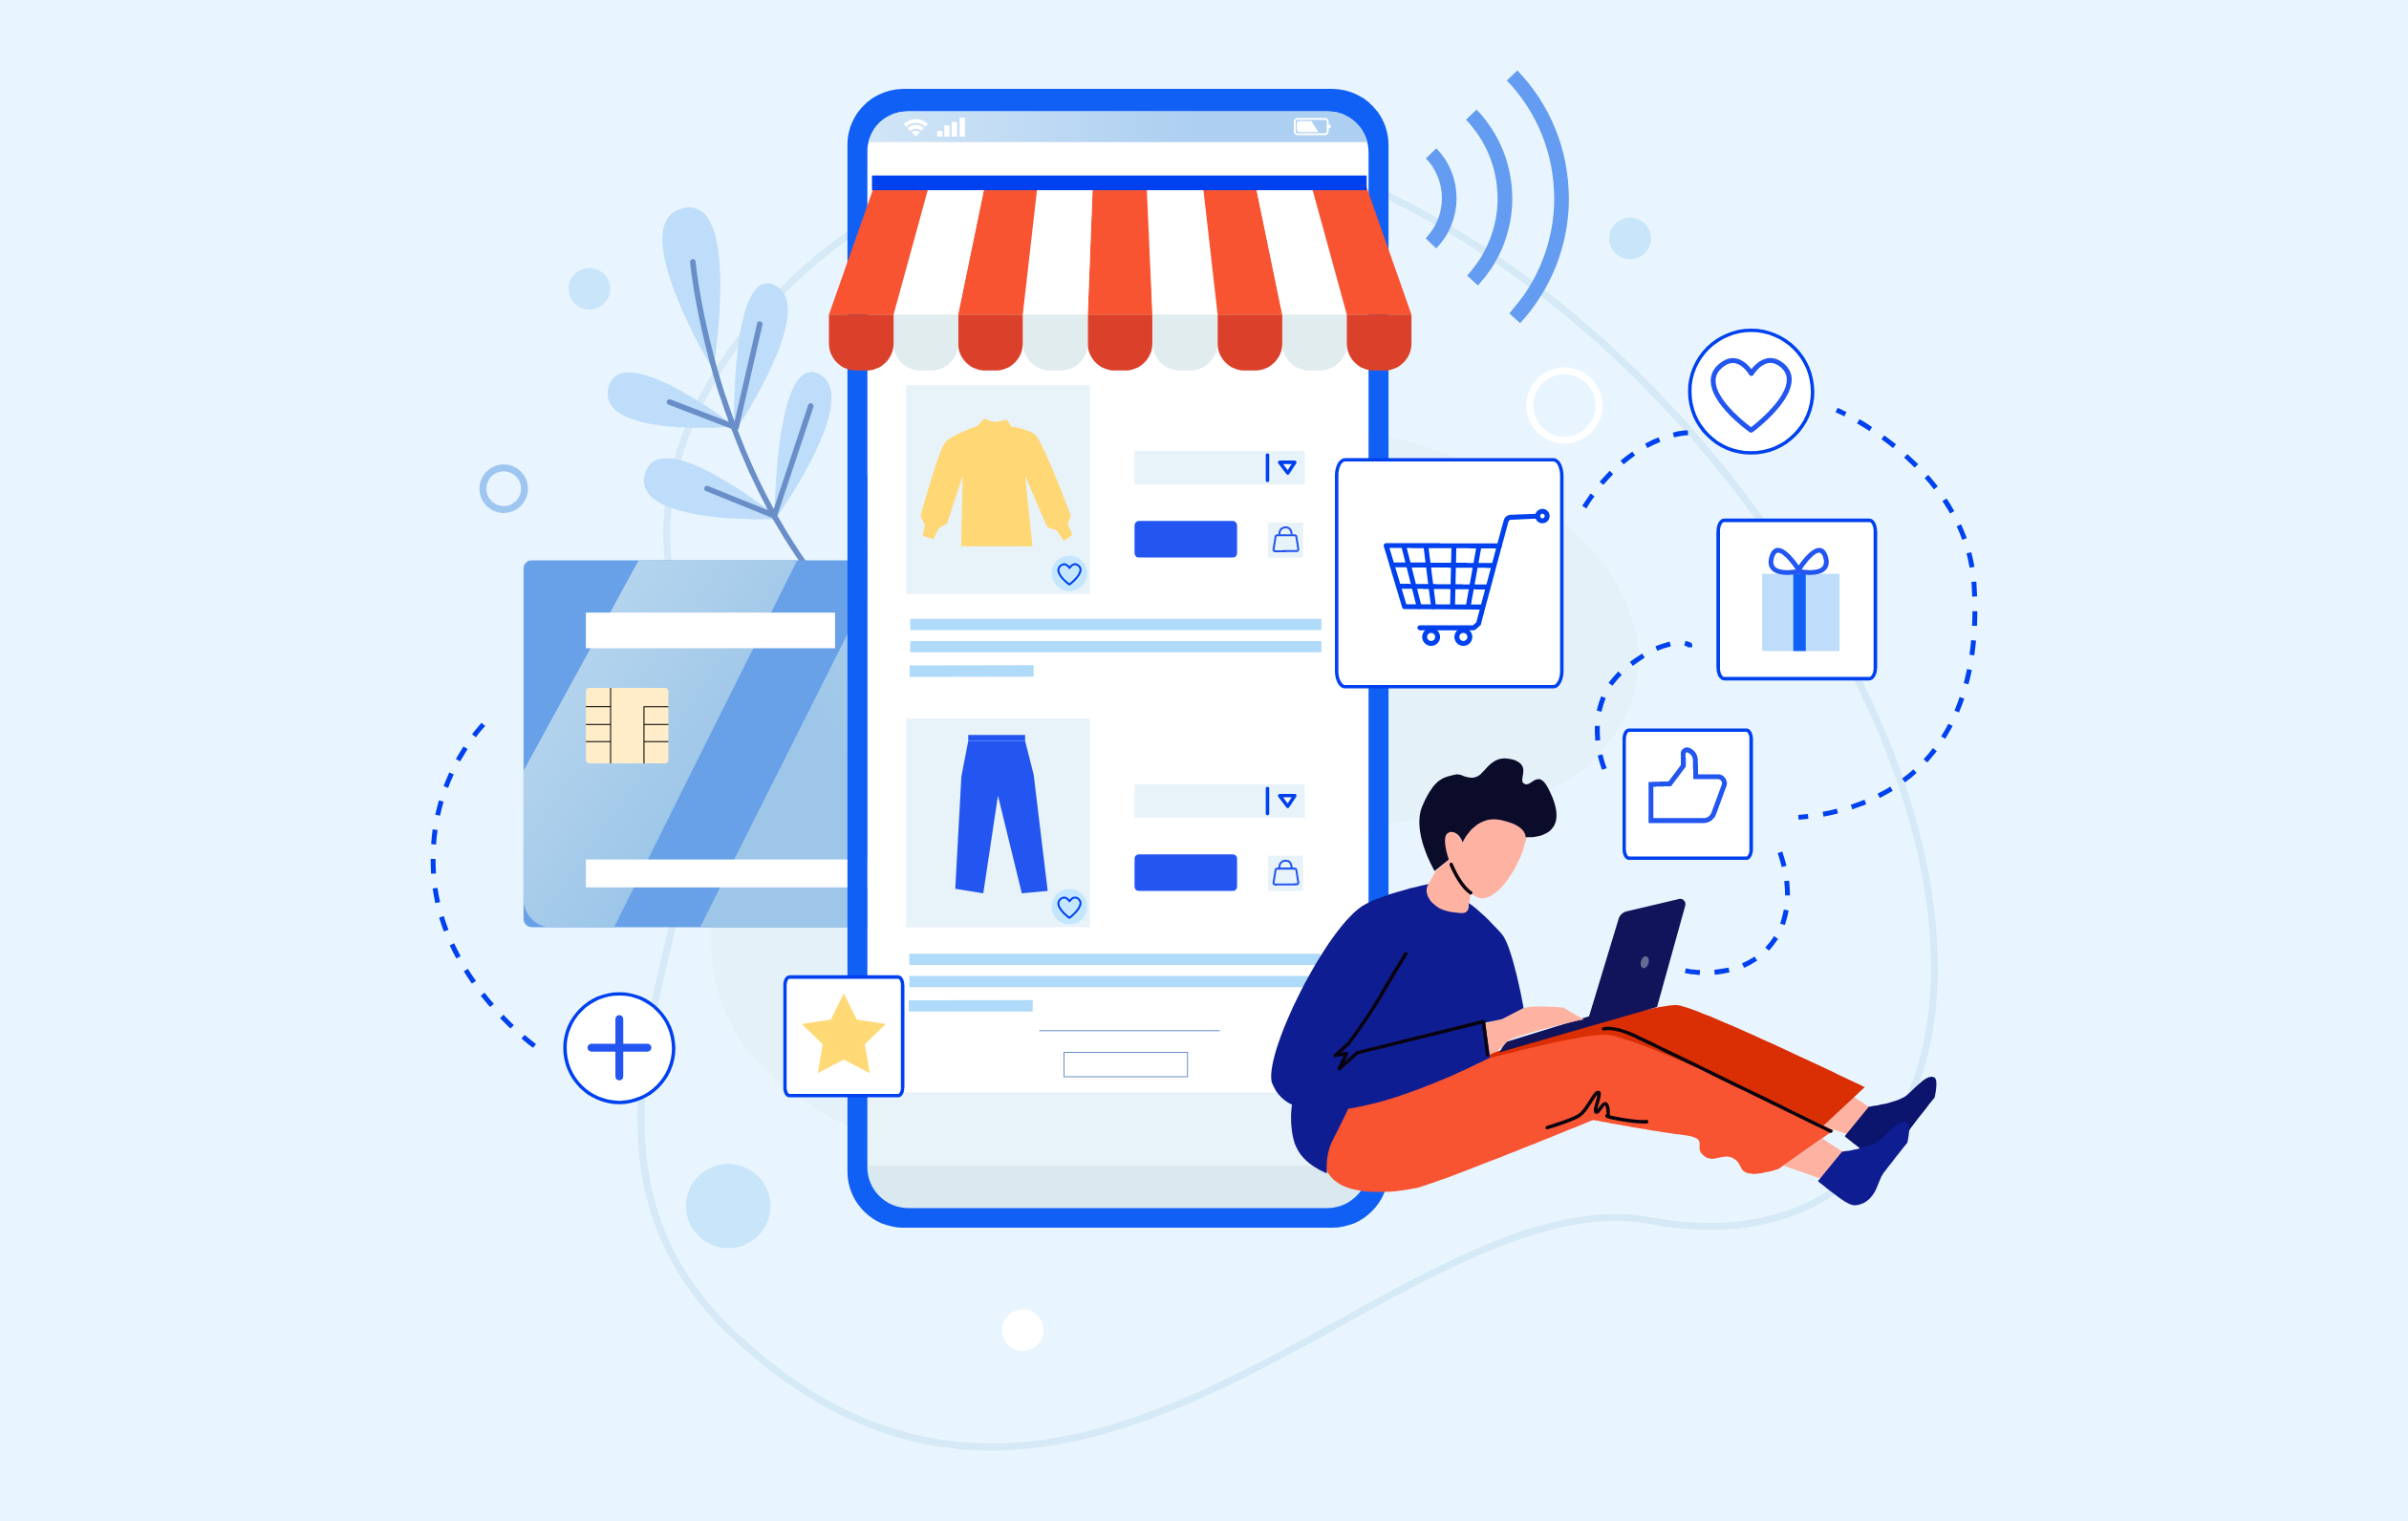 Illustration of a person sitting against the storefront and shopping on a laptop